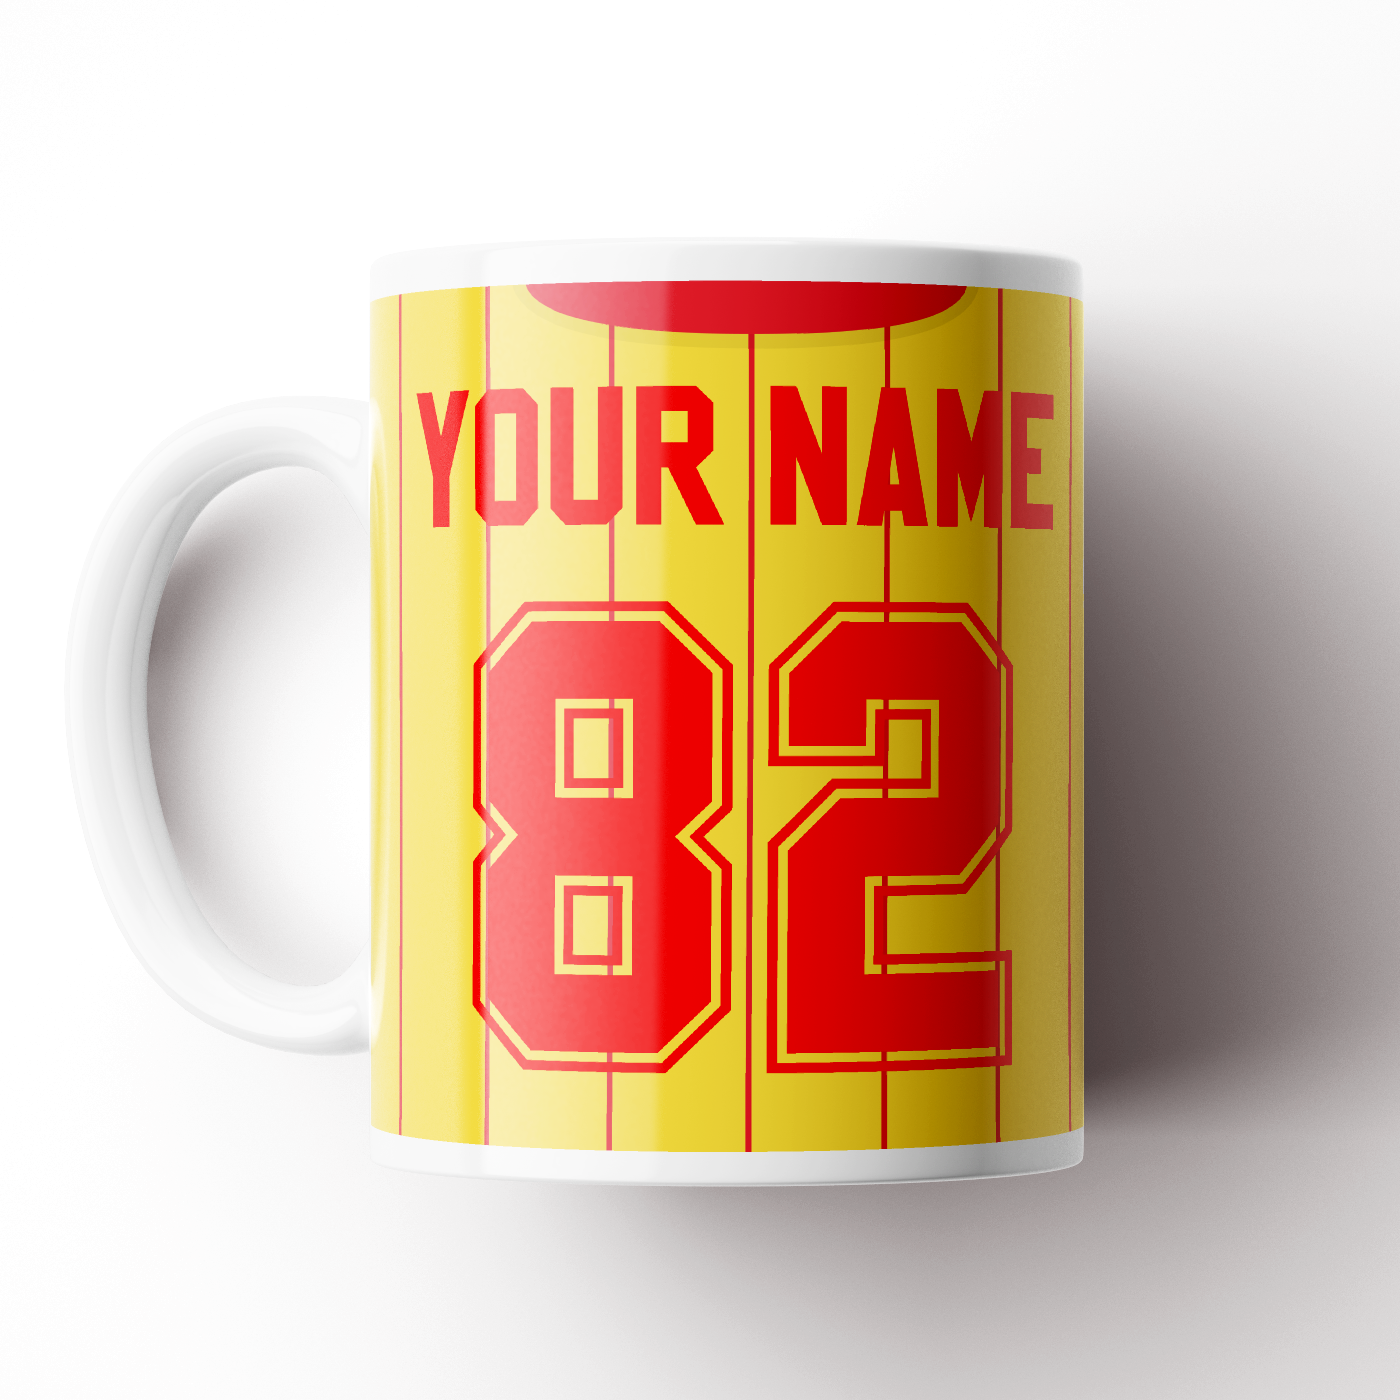 LIVERPOOL INSPIRED CERAMIC MUG 1982 AWAY